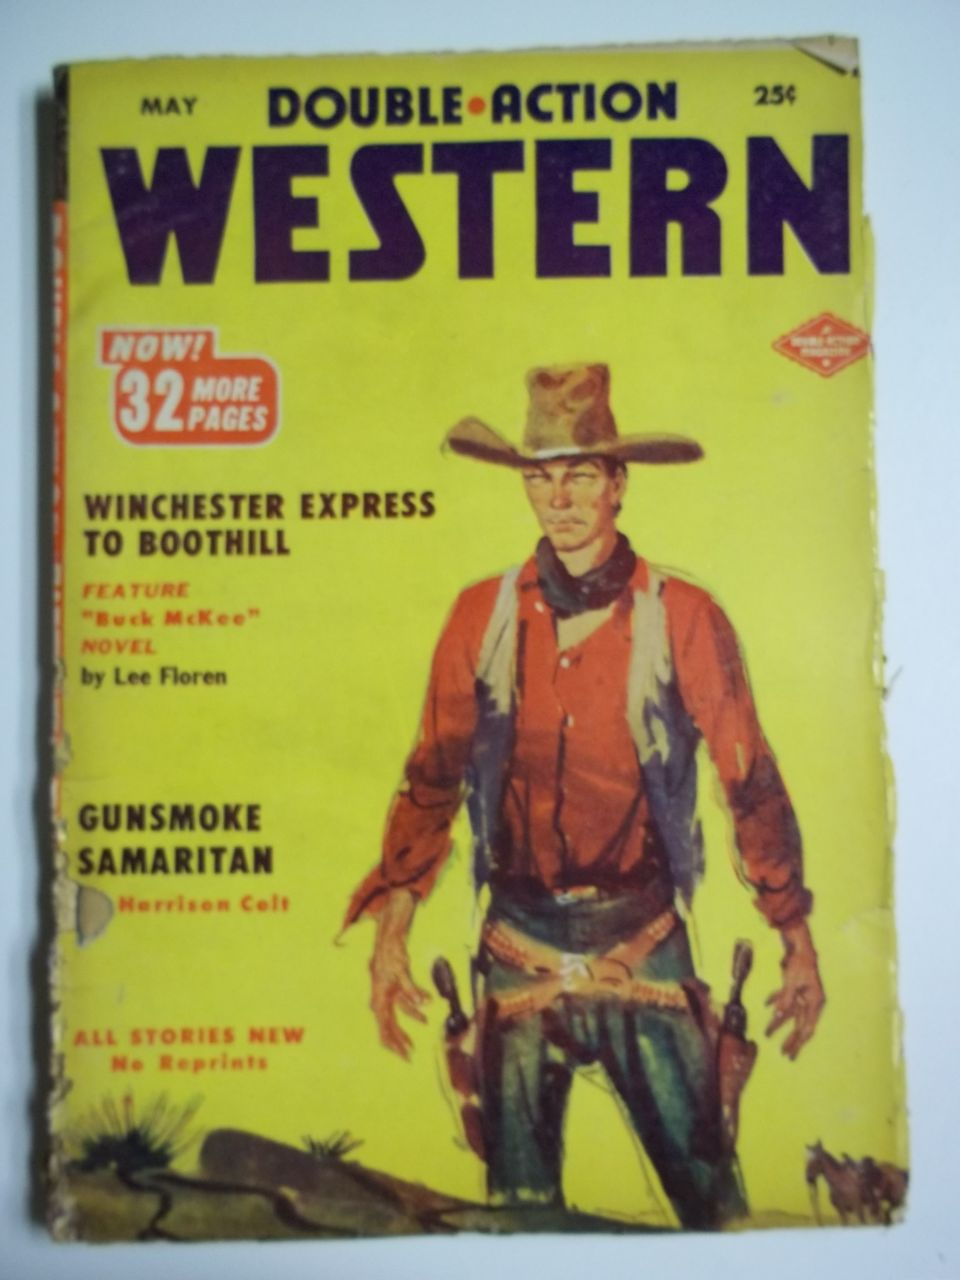 Double Action Western No. 5, Vol. 20, May 1953 Pulp Western Magazine